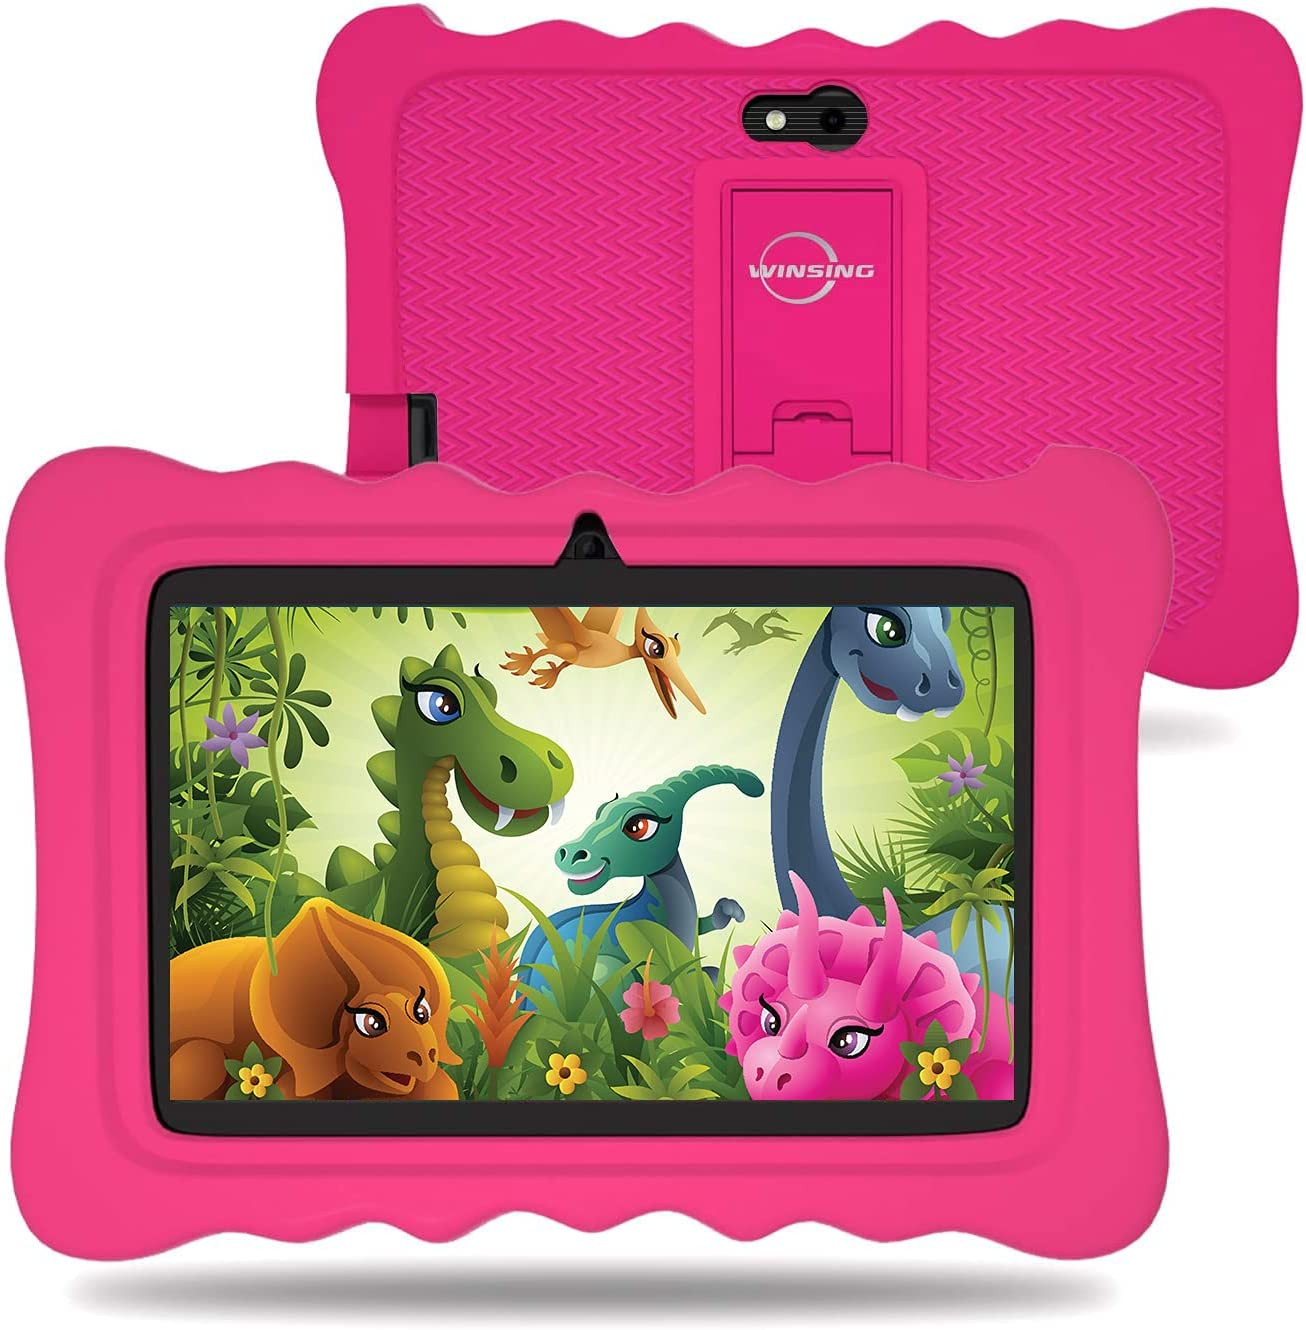 Kids Sale Credence Tablet 7 Inch for 2-10 2 GB Stor with 32 RAM